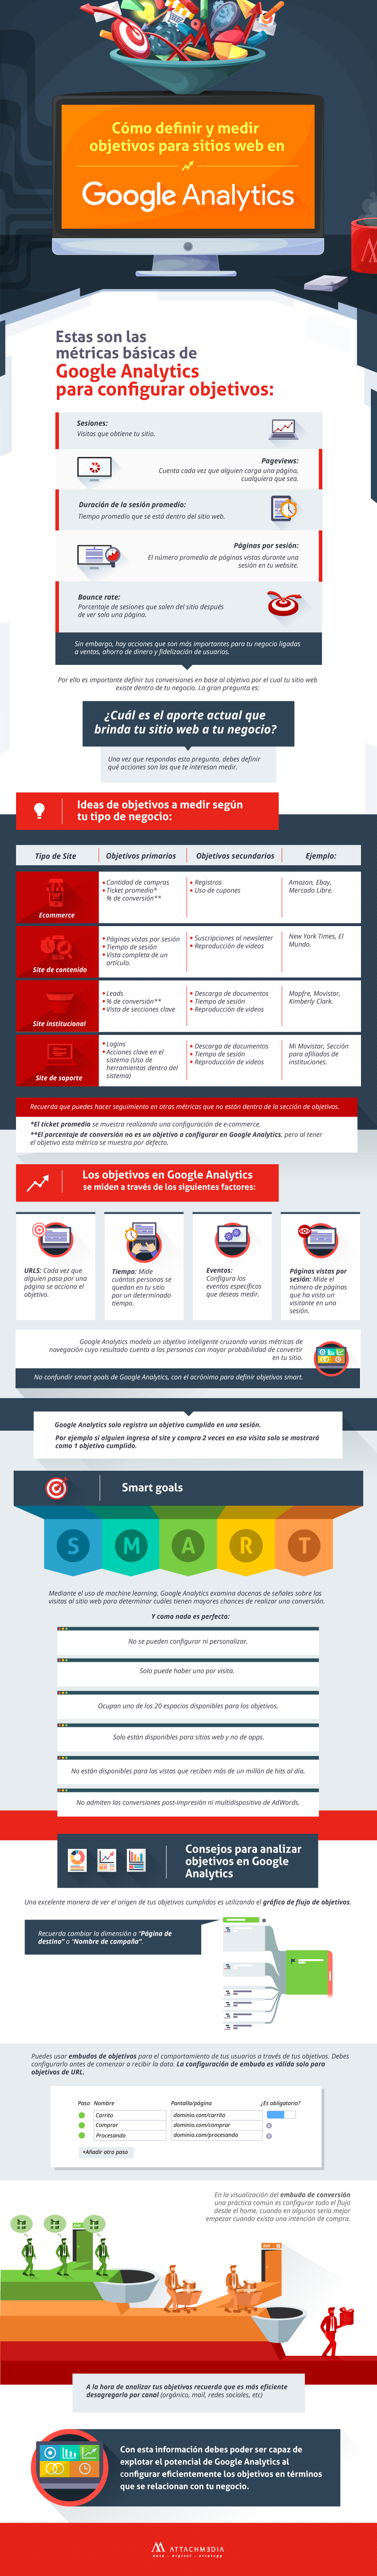 infografia-google-analytics-web